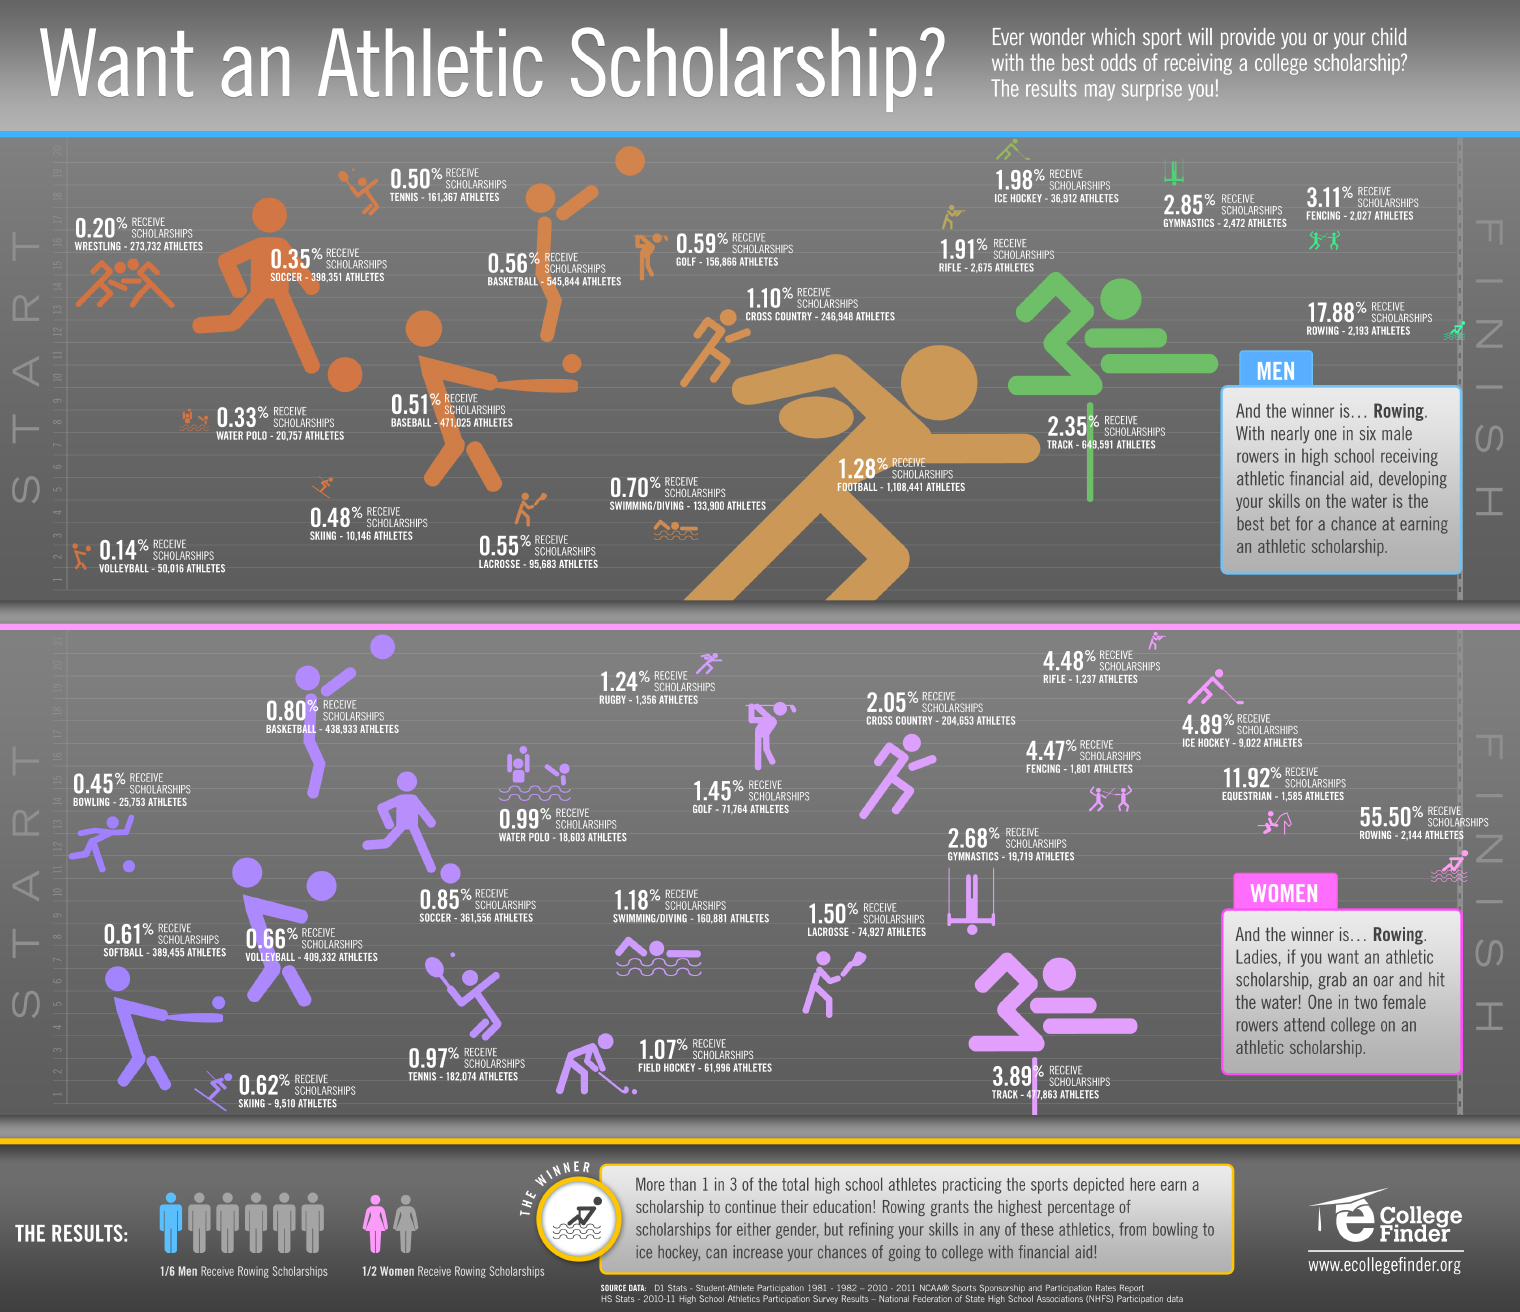 The Best Sport To Get You An Athletic Scholarship